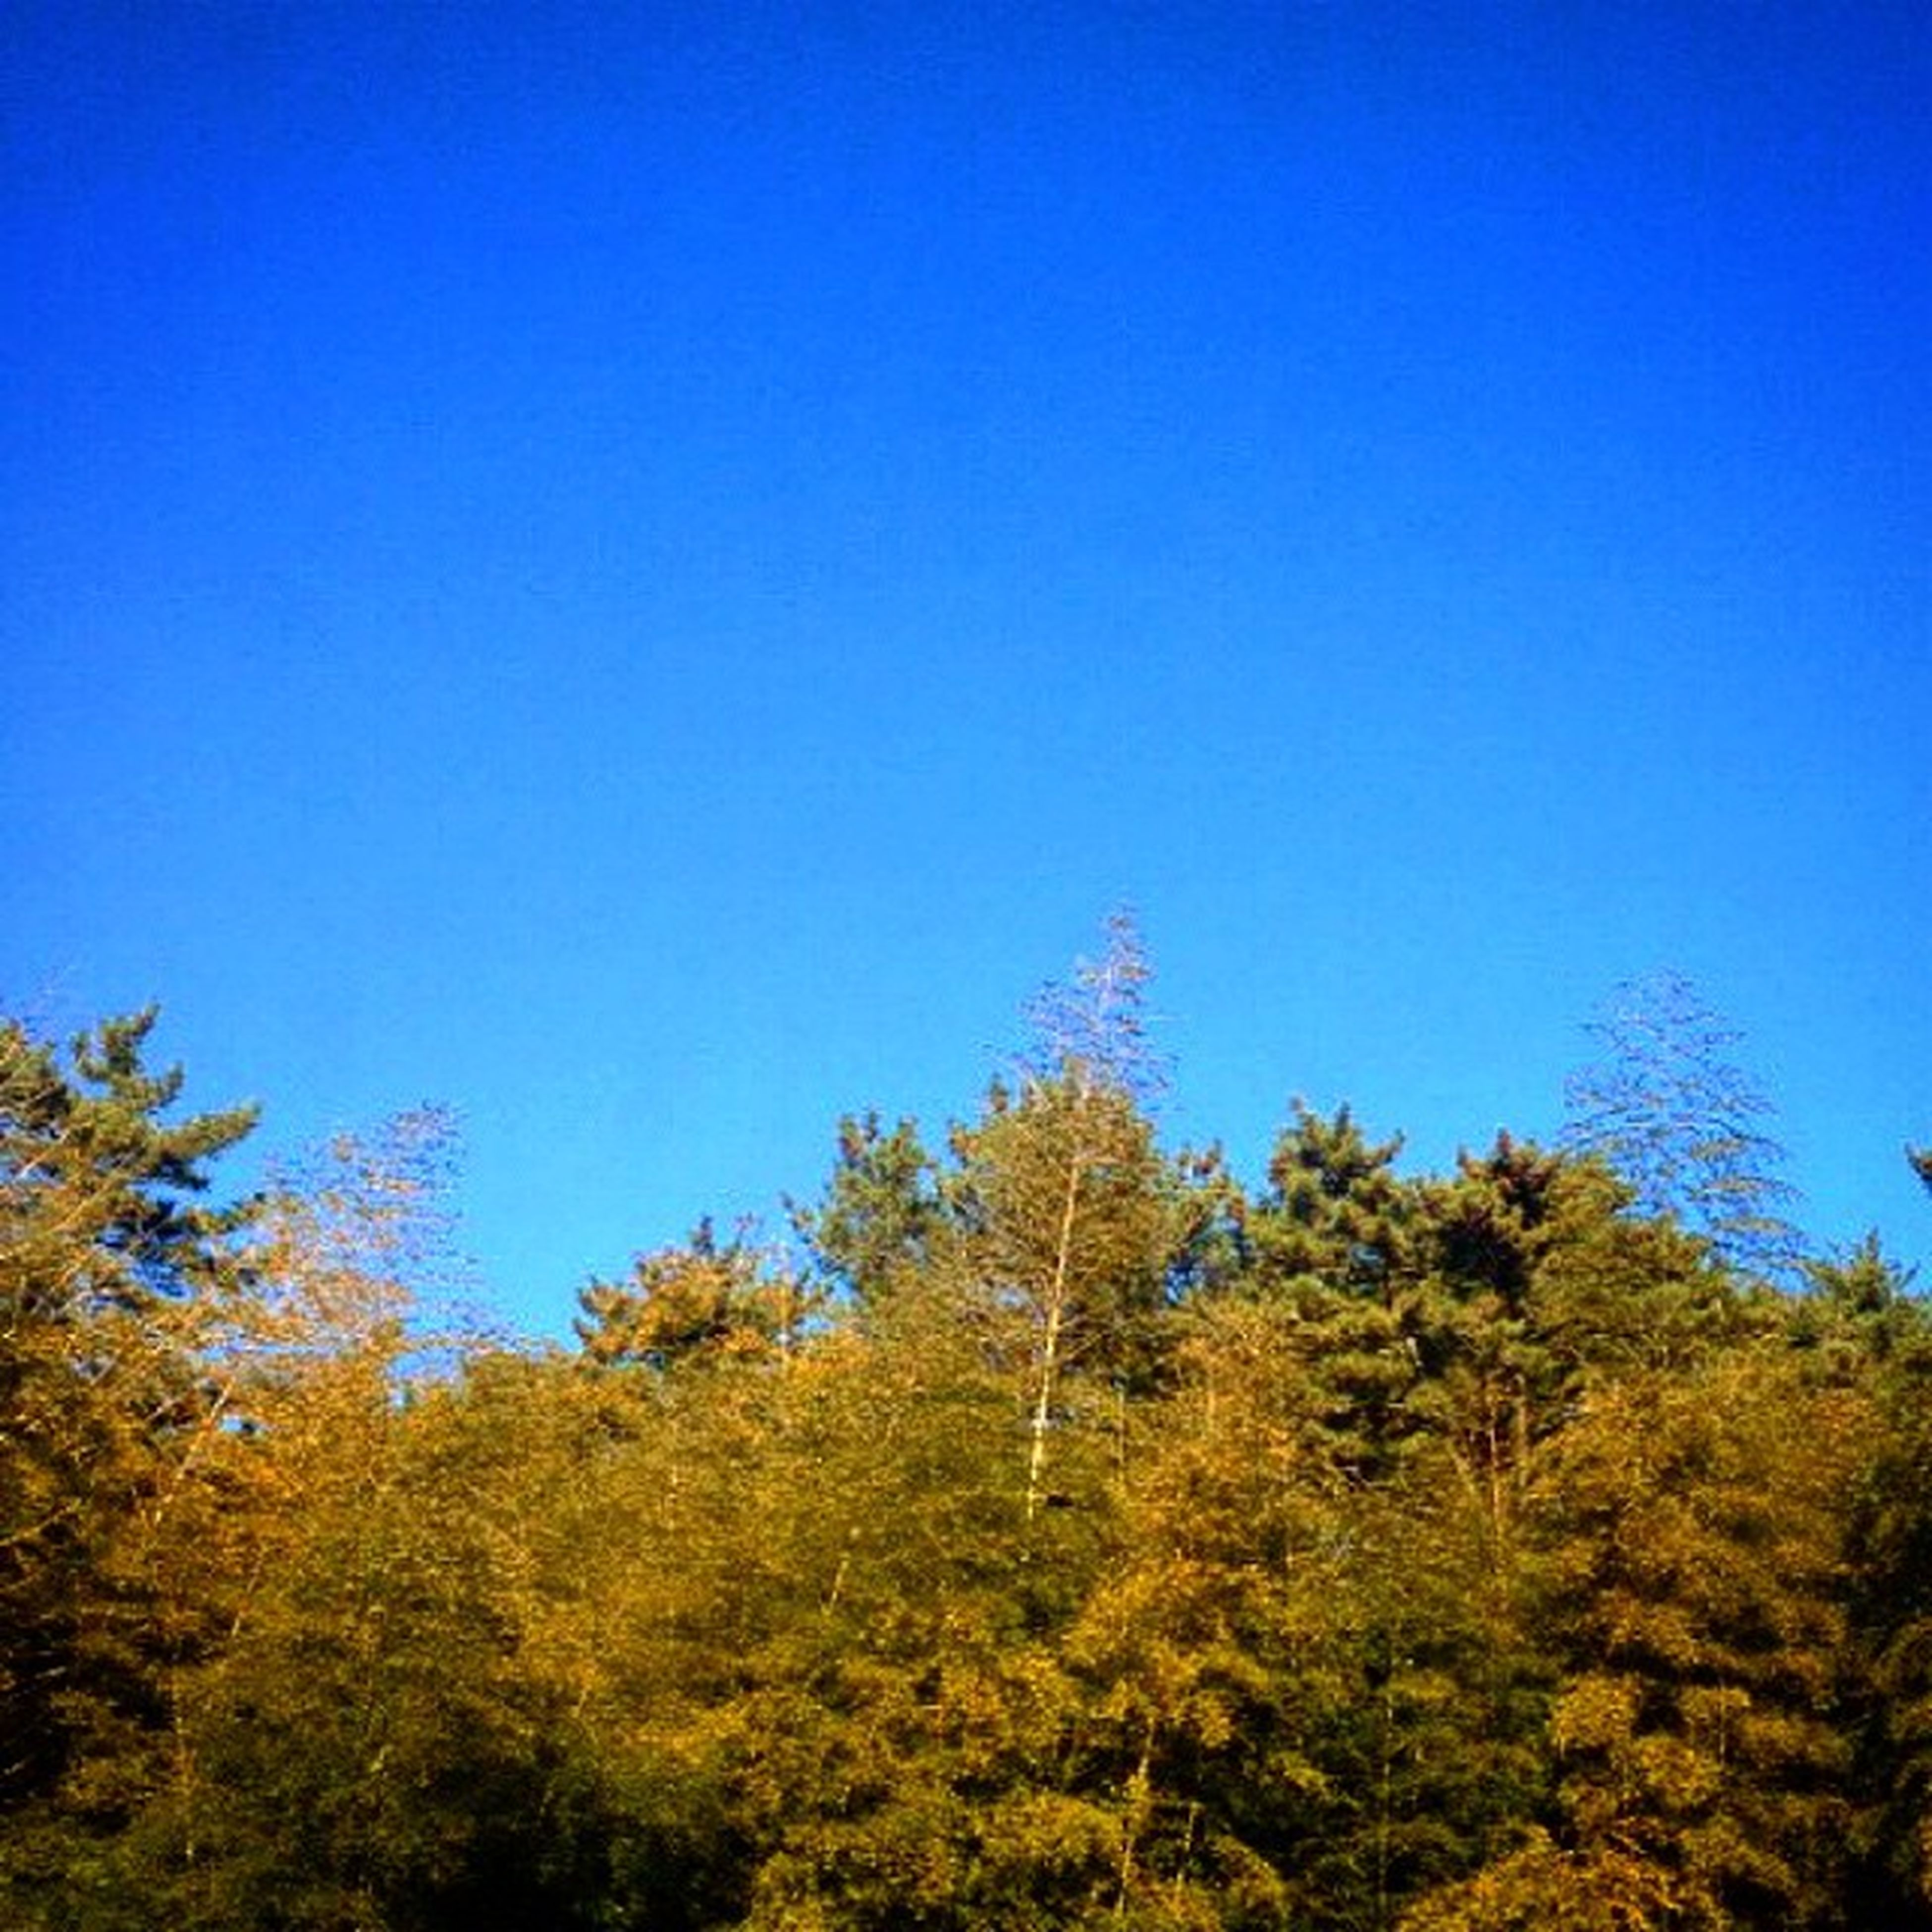 blue, clear sky, copy space, tree, low angle view, tranquility, beauty in nature, growth, nature, tranquil scene, scenics, outdoors, idyllic, no people, day, branch, sunlight, green color, yellow, high section